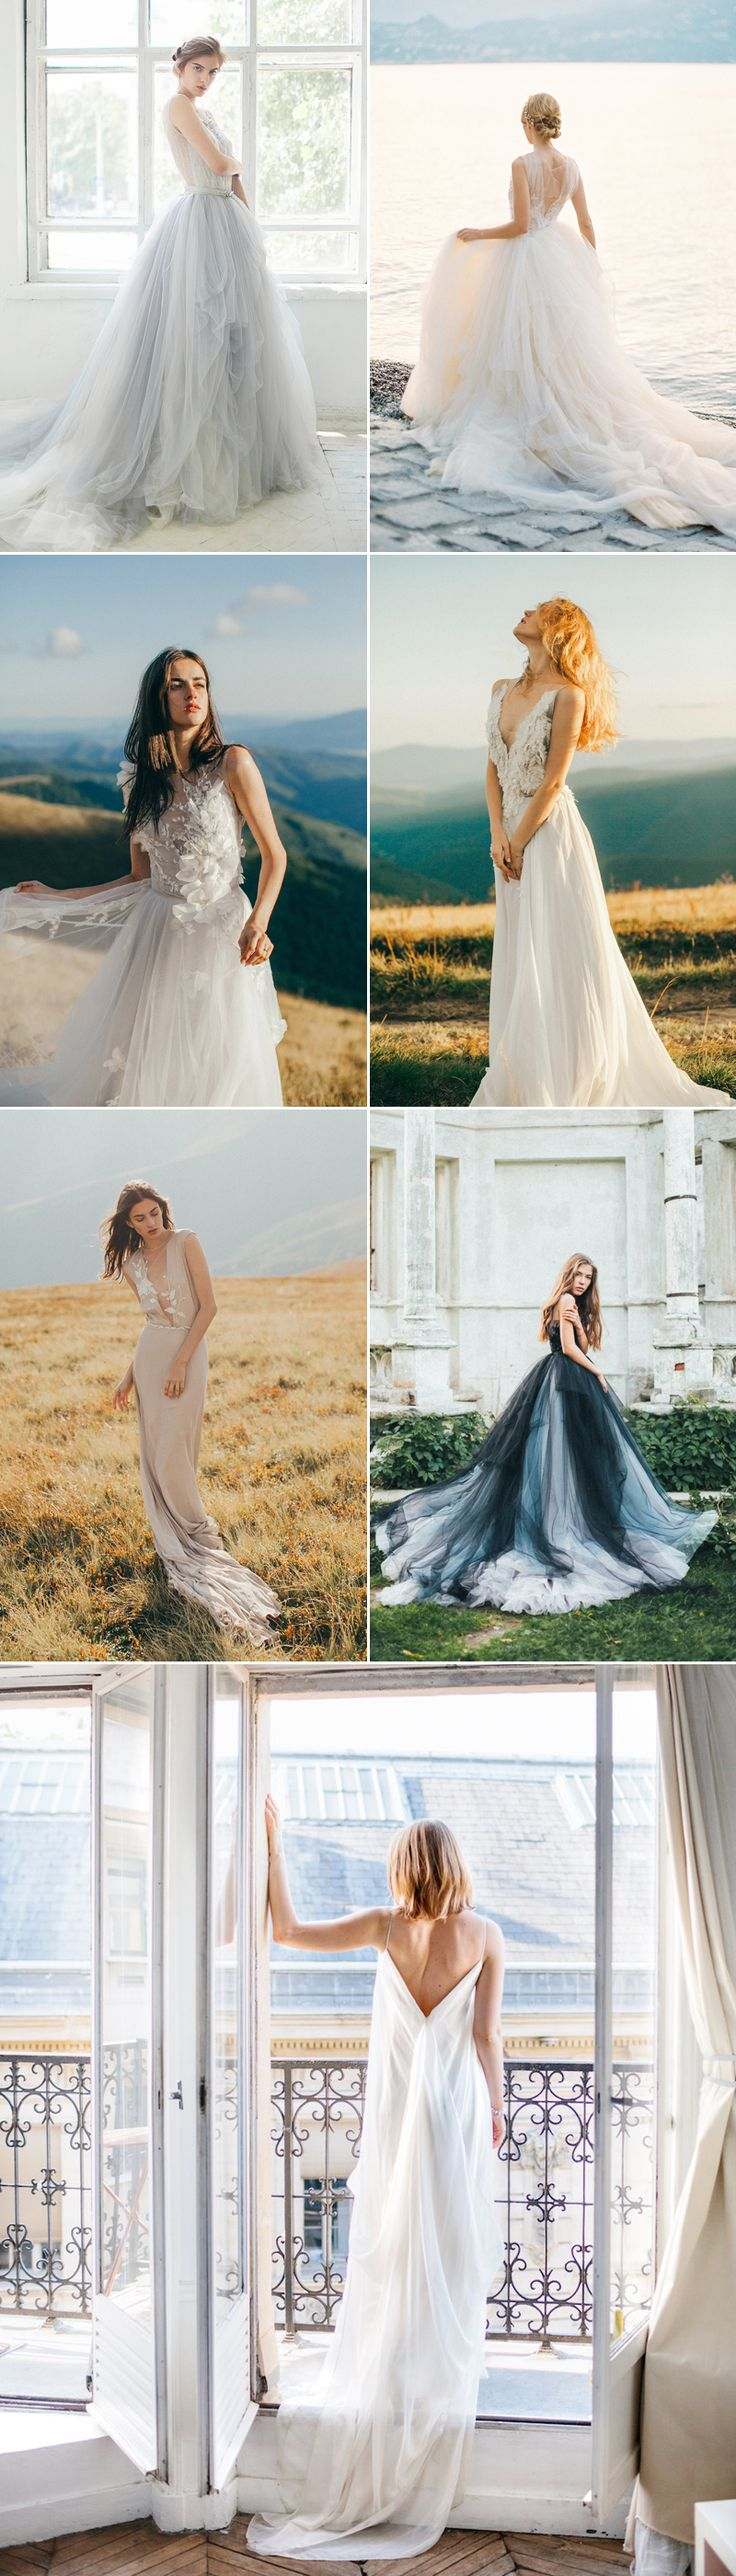 6 Ethereal Budget-Friendly Wedding Dress Labels for the Indie Bride!